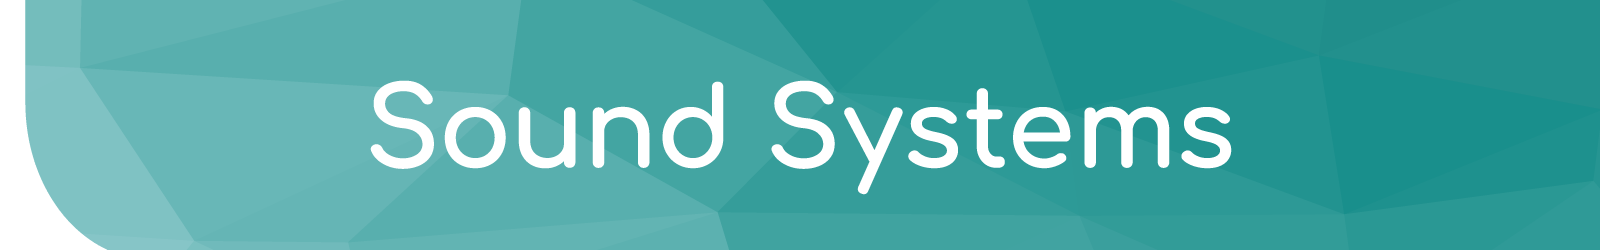 Sound Systems - Electronic Communication Services